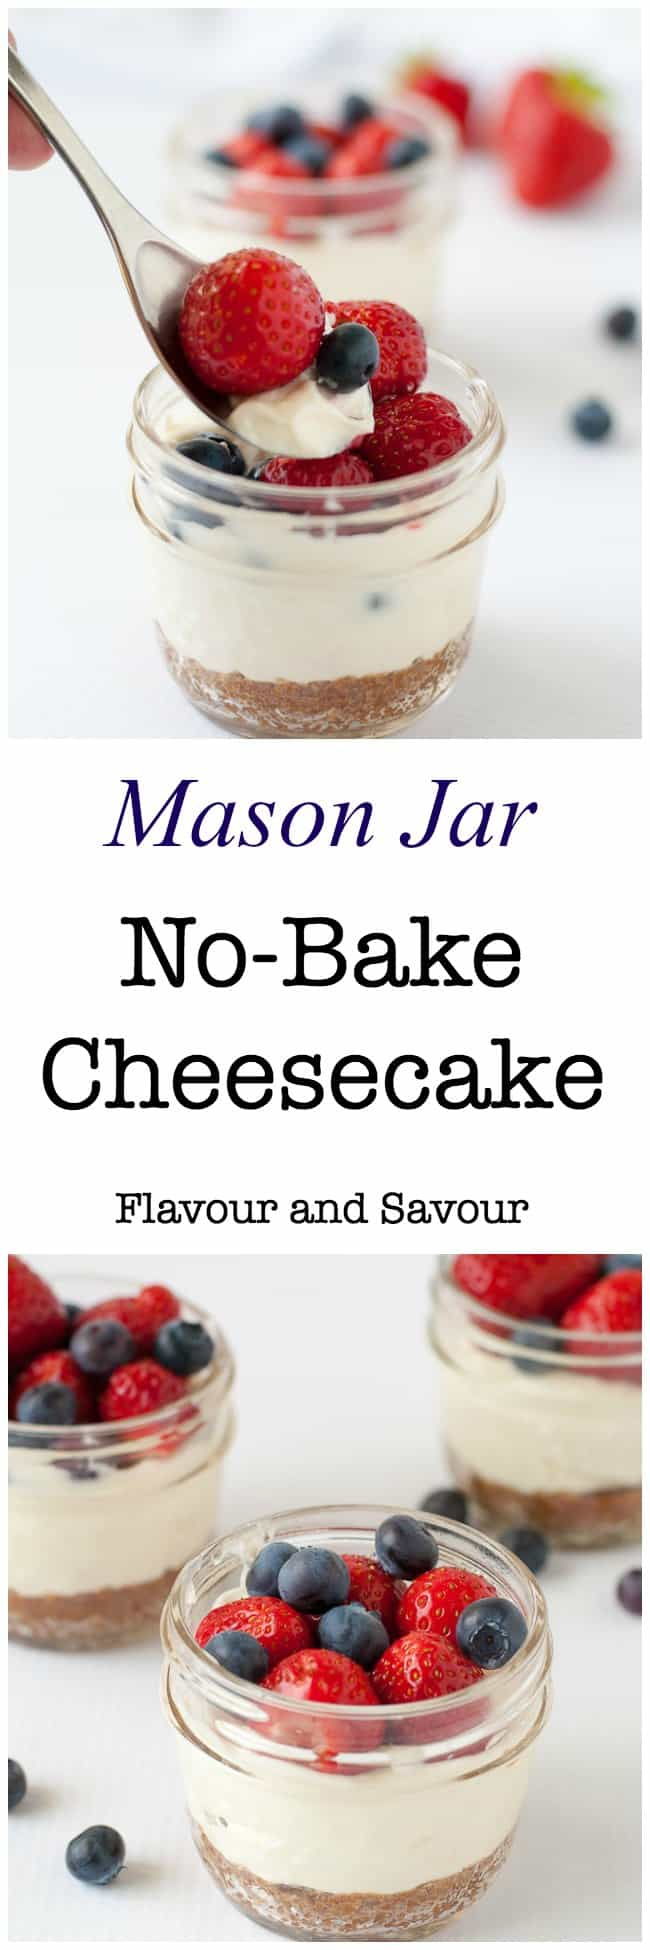 Mini no-bake cheesecakes made and served in Mason jars make an ideal dessert for a picnic, for camping, or as a fun treat for kids. A quick and easy dessert.